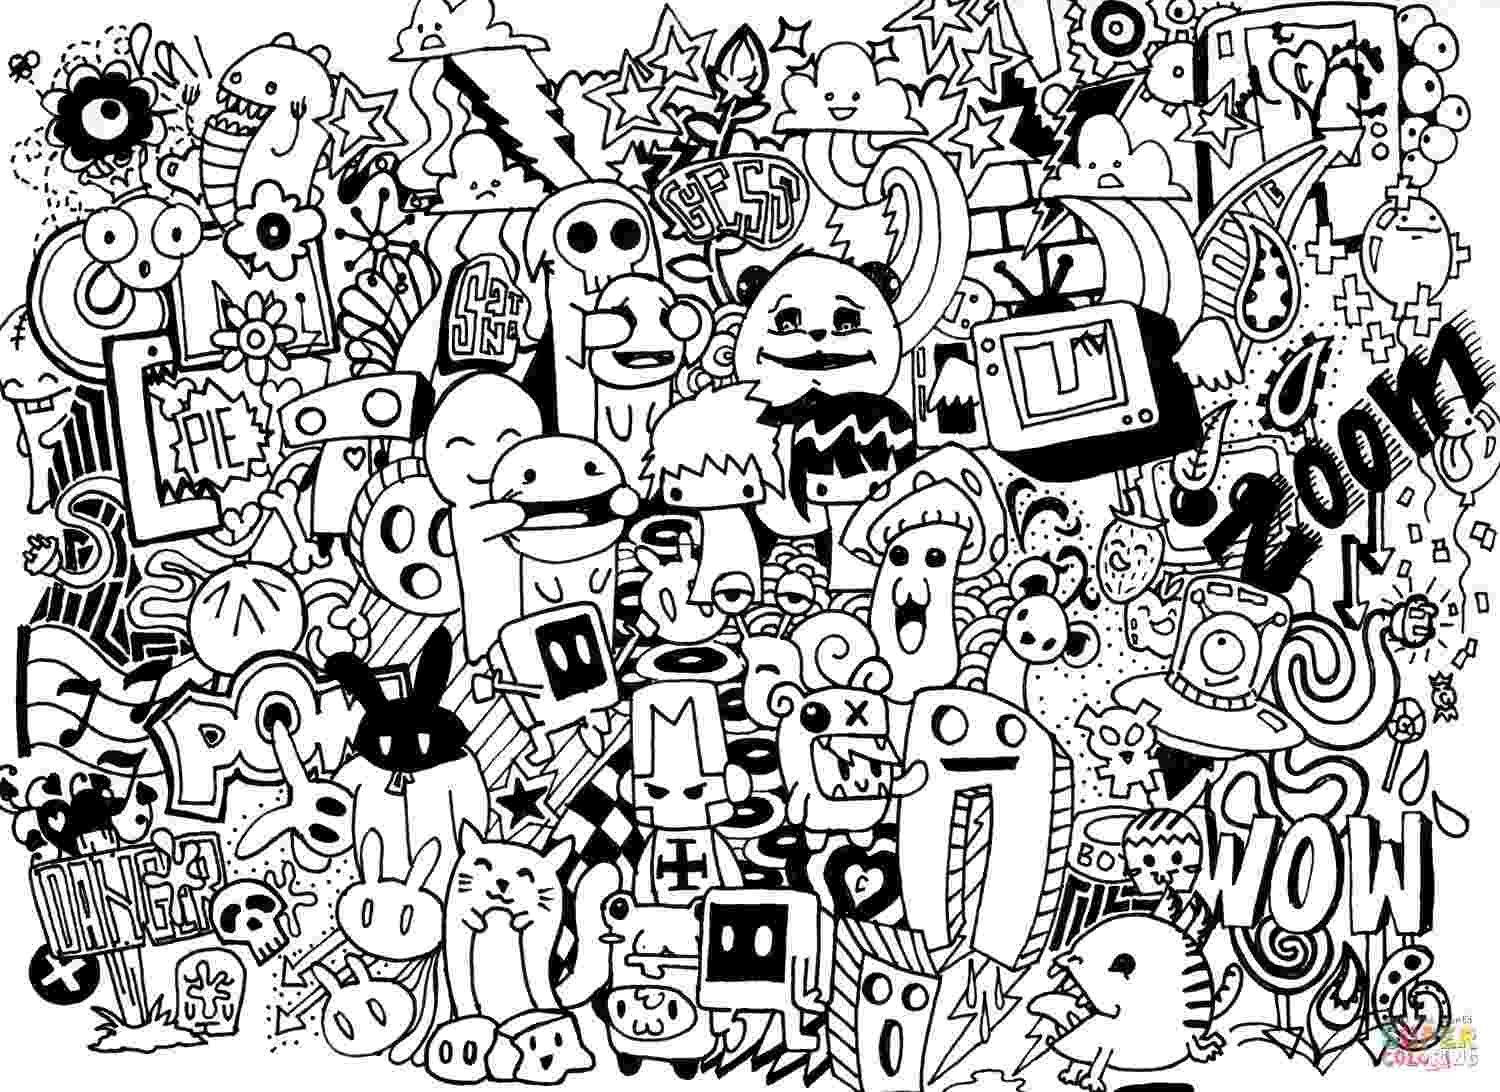 doodle art printables doodle coloring pages best coloring pages for kids art printables doodle